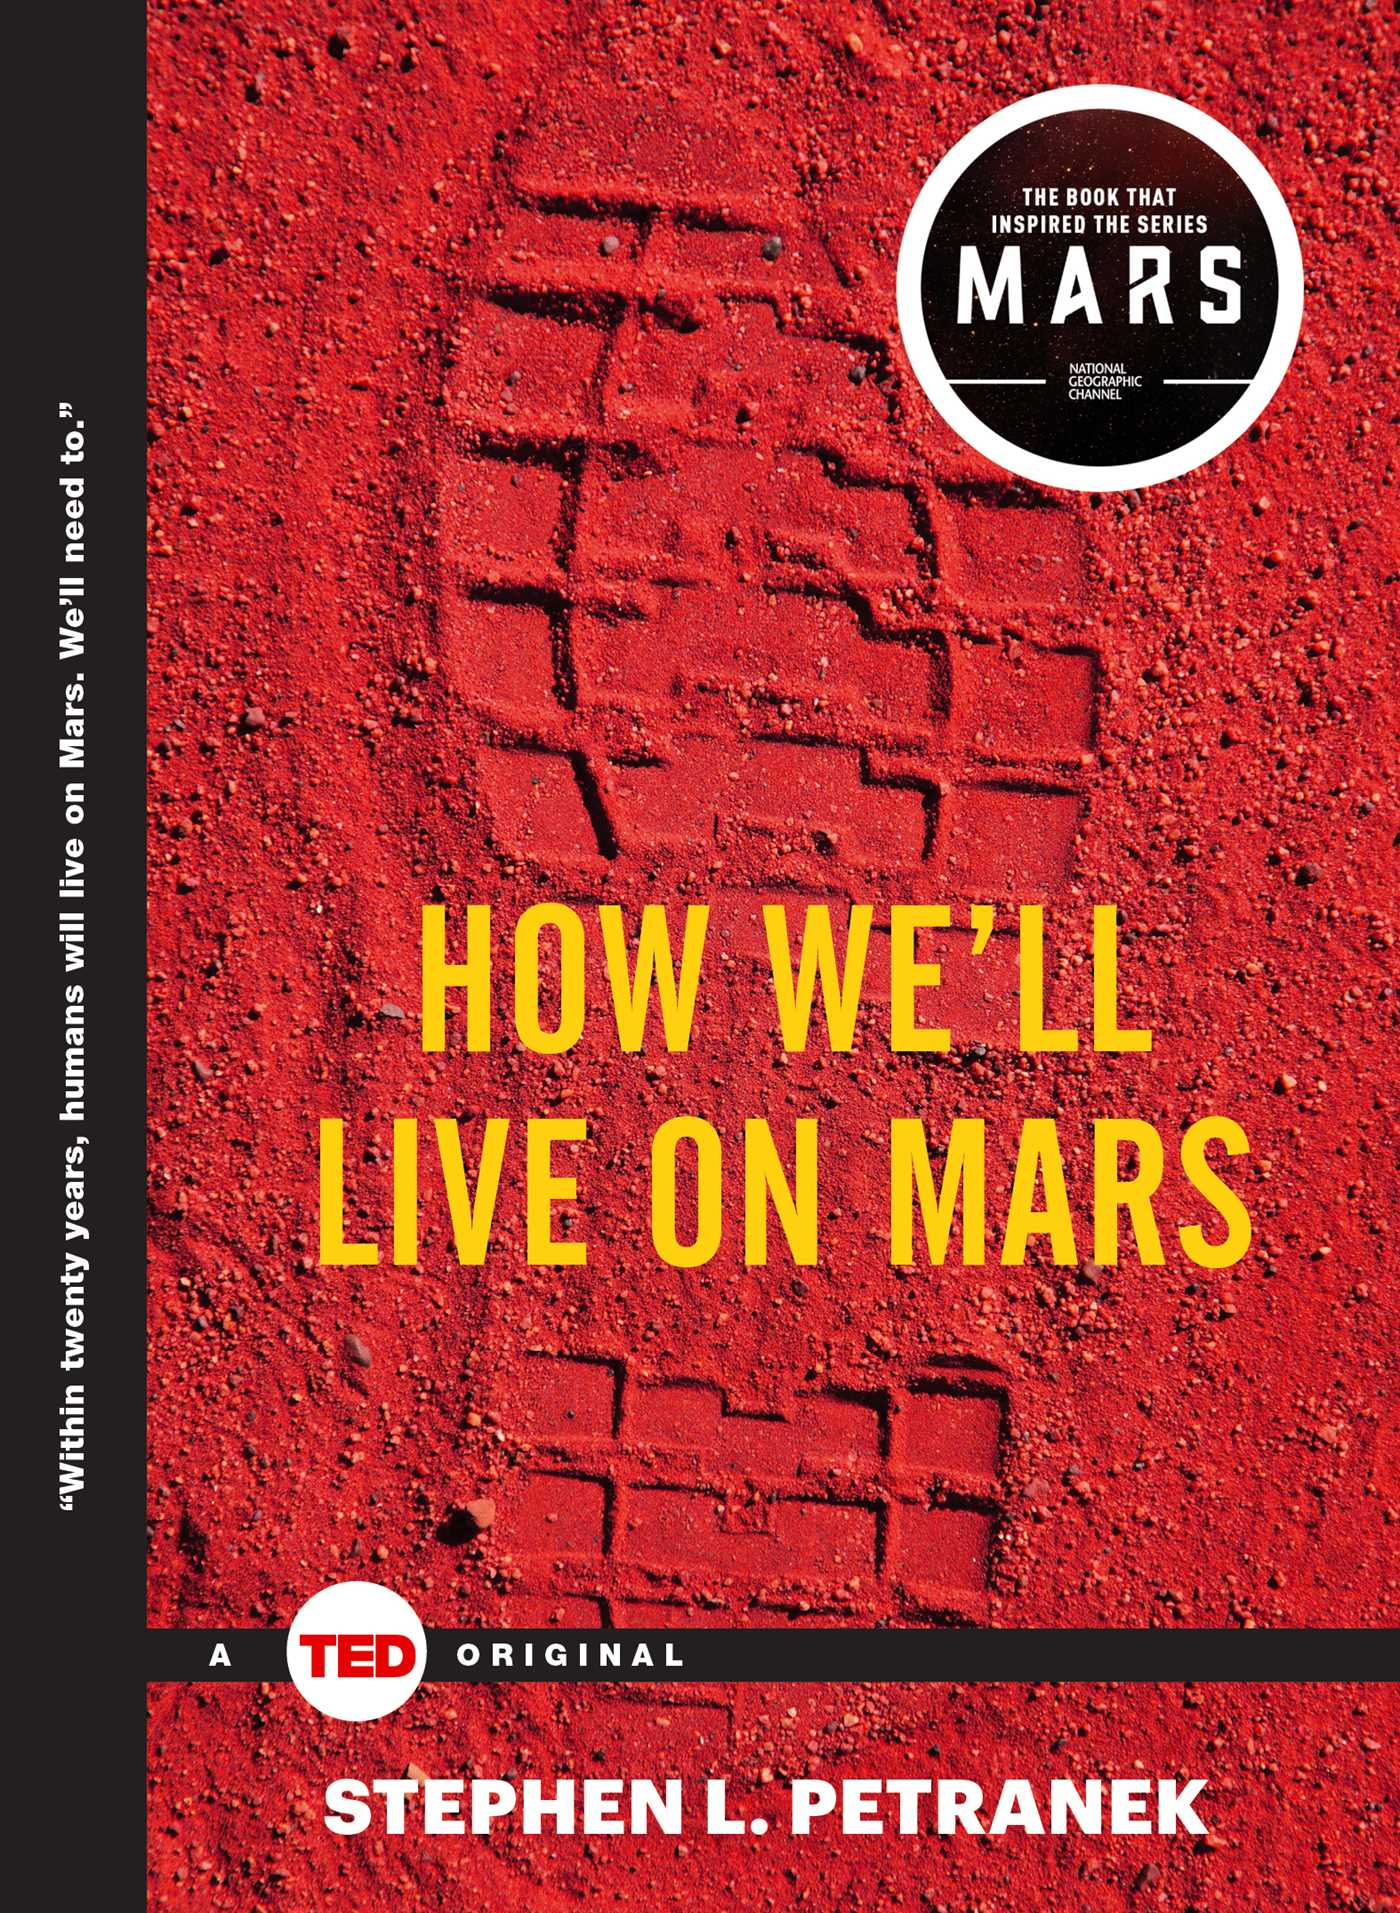 How well live on mars 9781476784762 hr